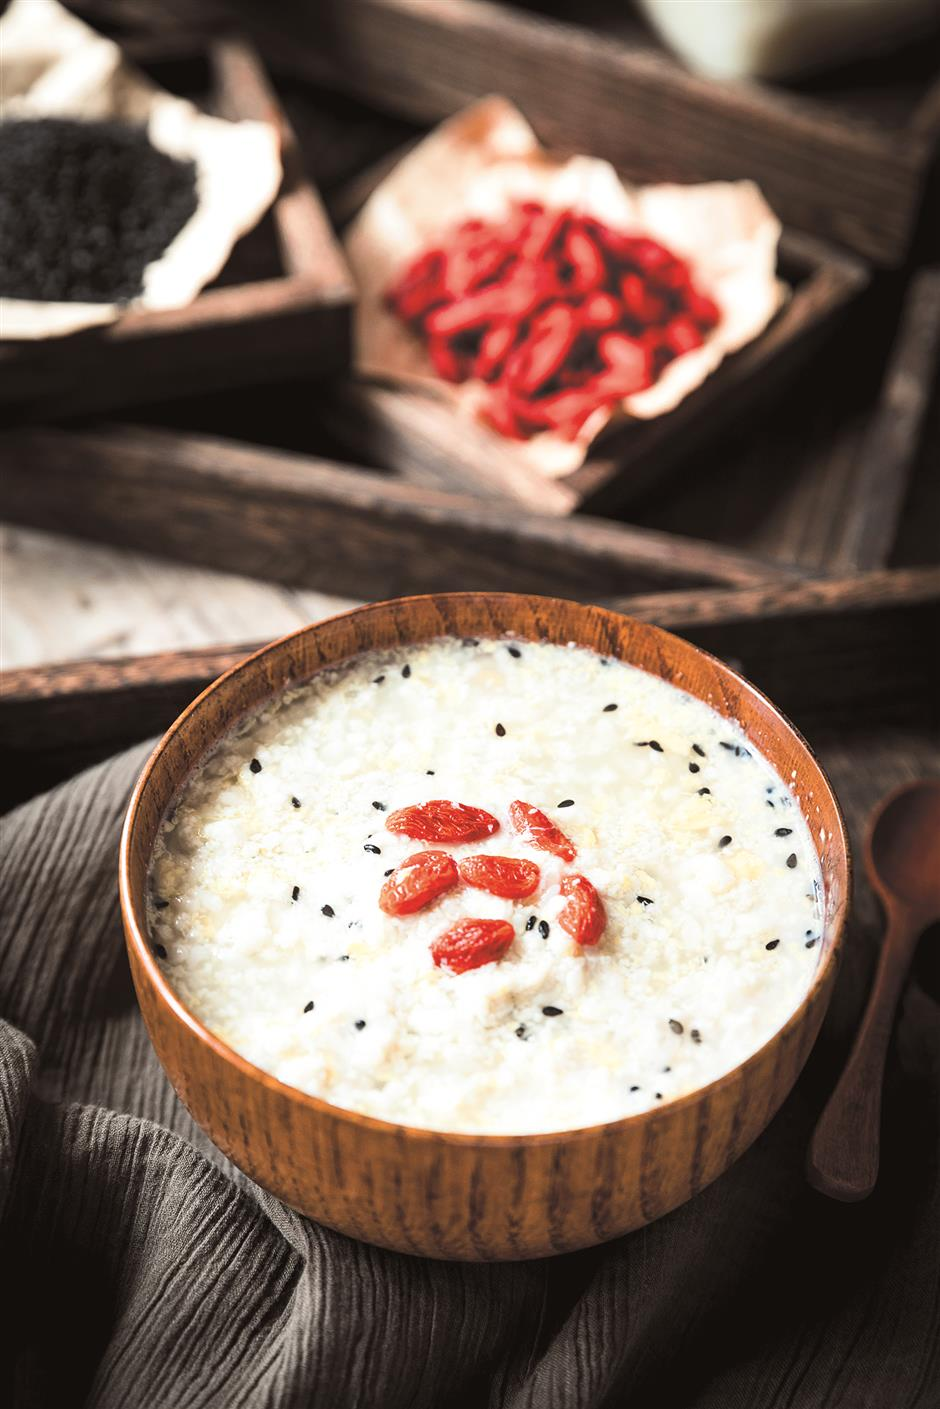 Fermented rice a sweet remedy